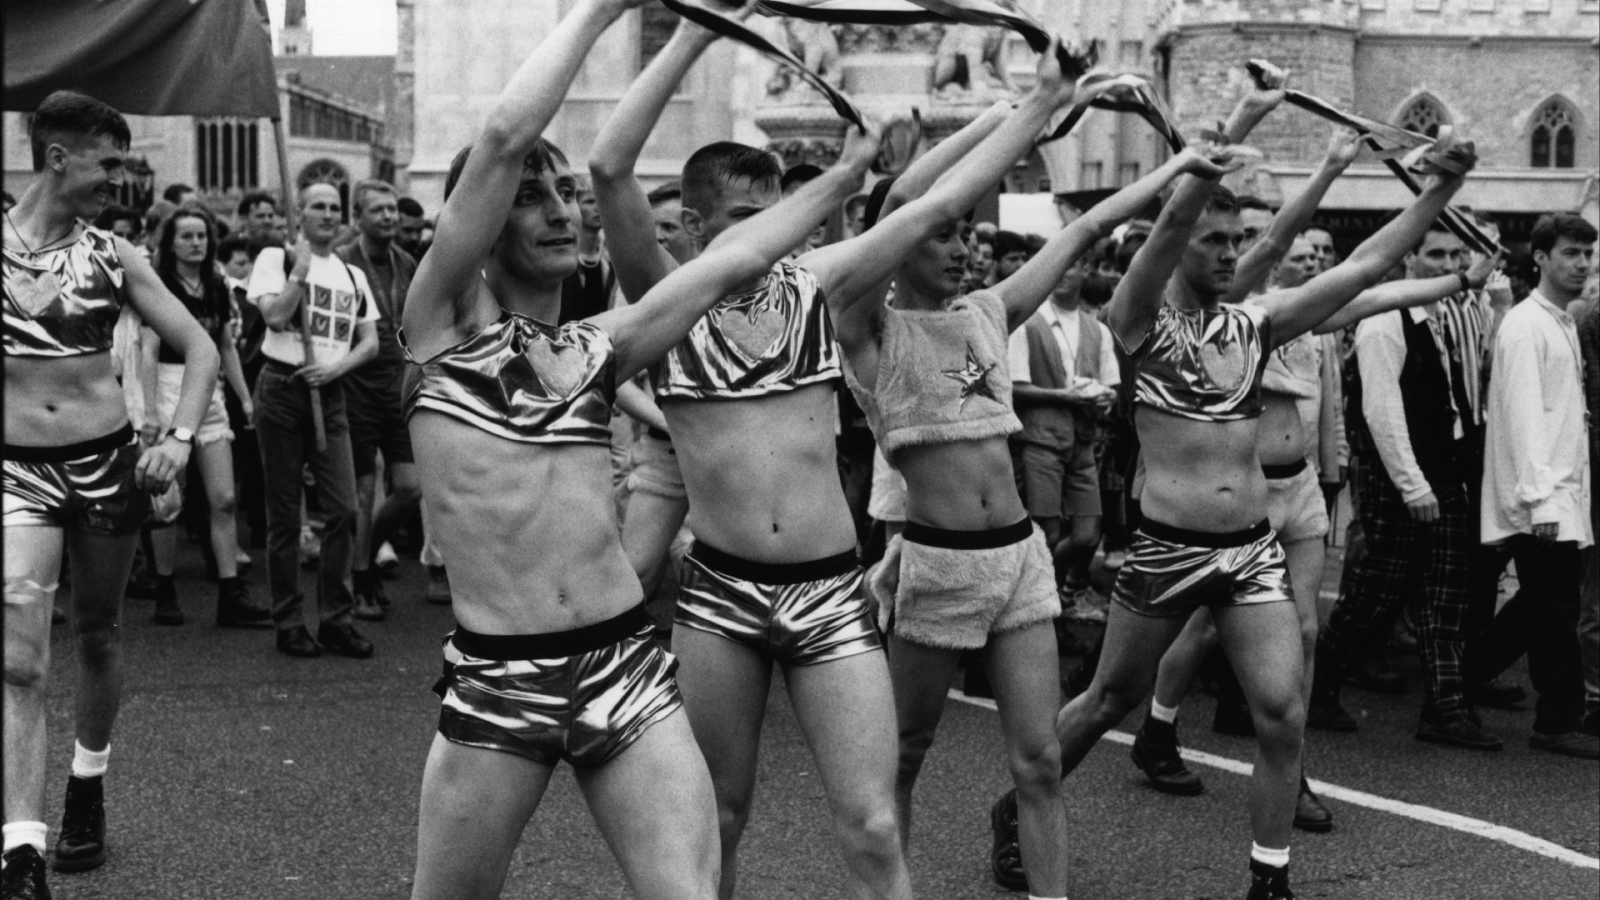 how-the-lives-of-gay-men-were-changed-with-the-sexual-offences-act-of-1967